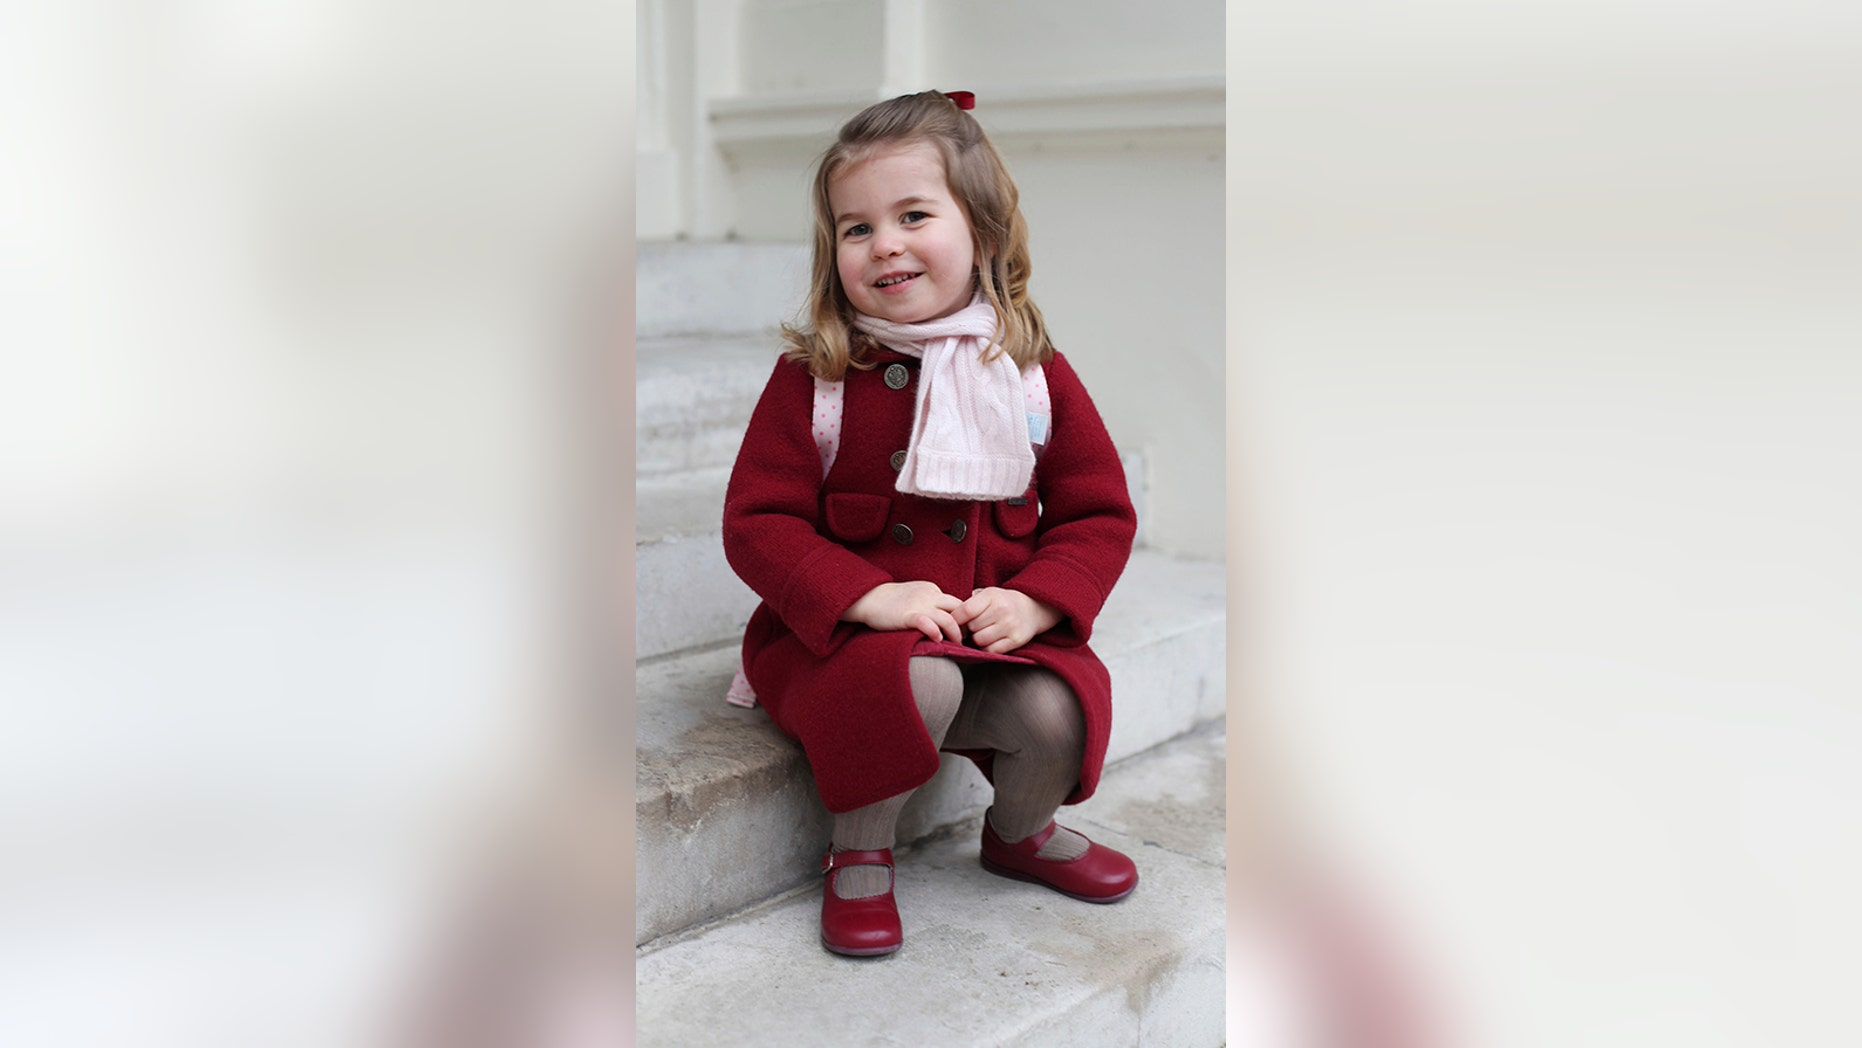 The youngest royal, Princess Charlotte, smiles as she prepares to attend her first day of school at the Willcocks Nursery School, in London, Monday, Jan. 8, 2018.